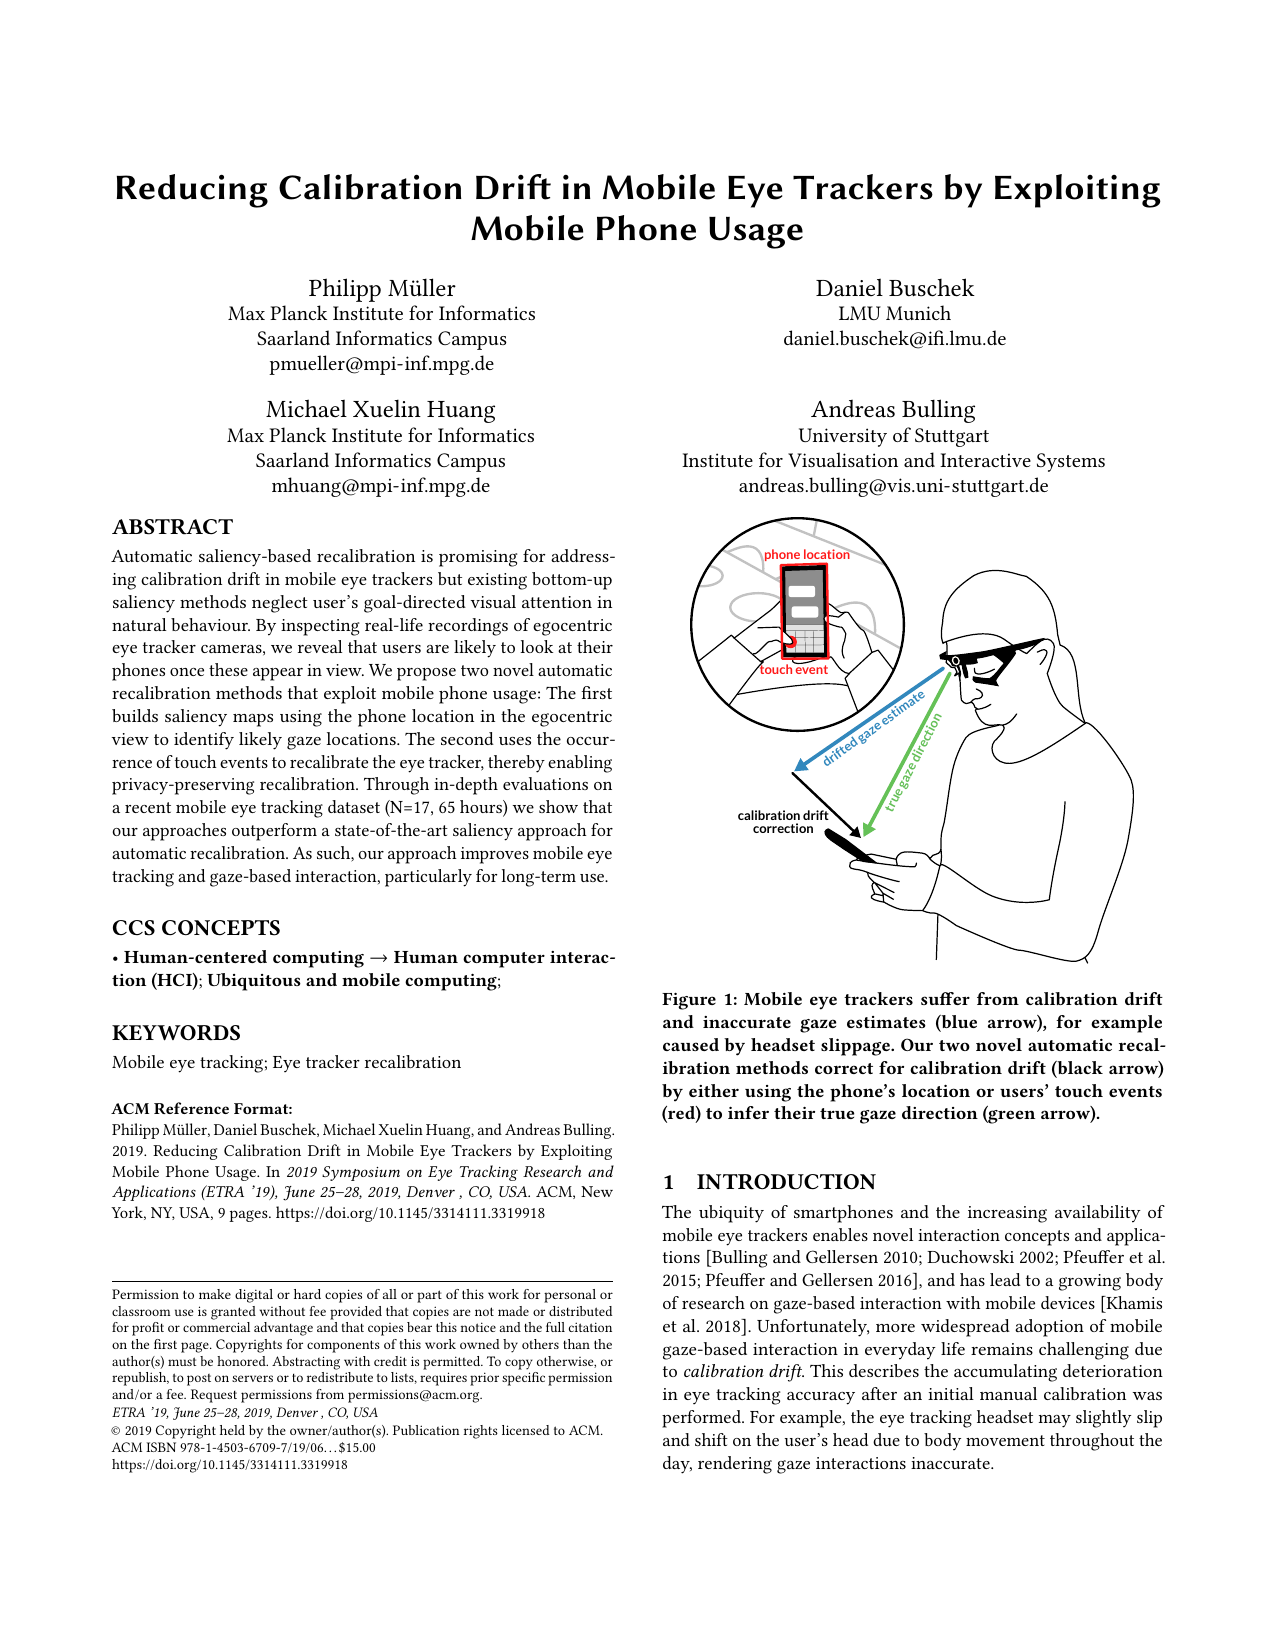 Reducing Calibration Drift in Mobile Eye Trackers by Exploiting Mobile Phone Usage